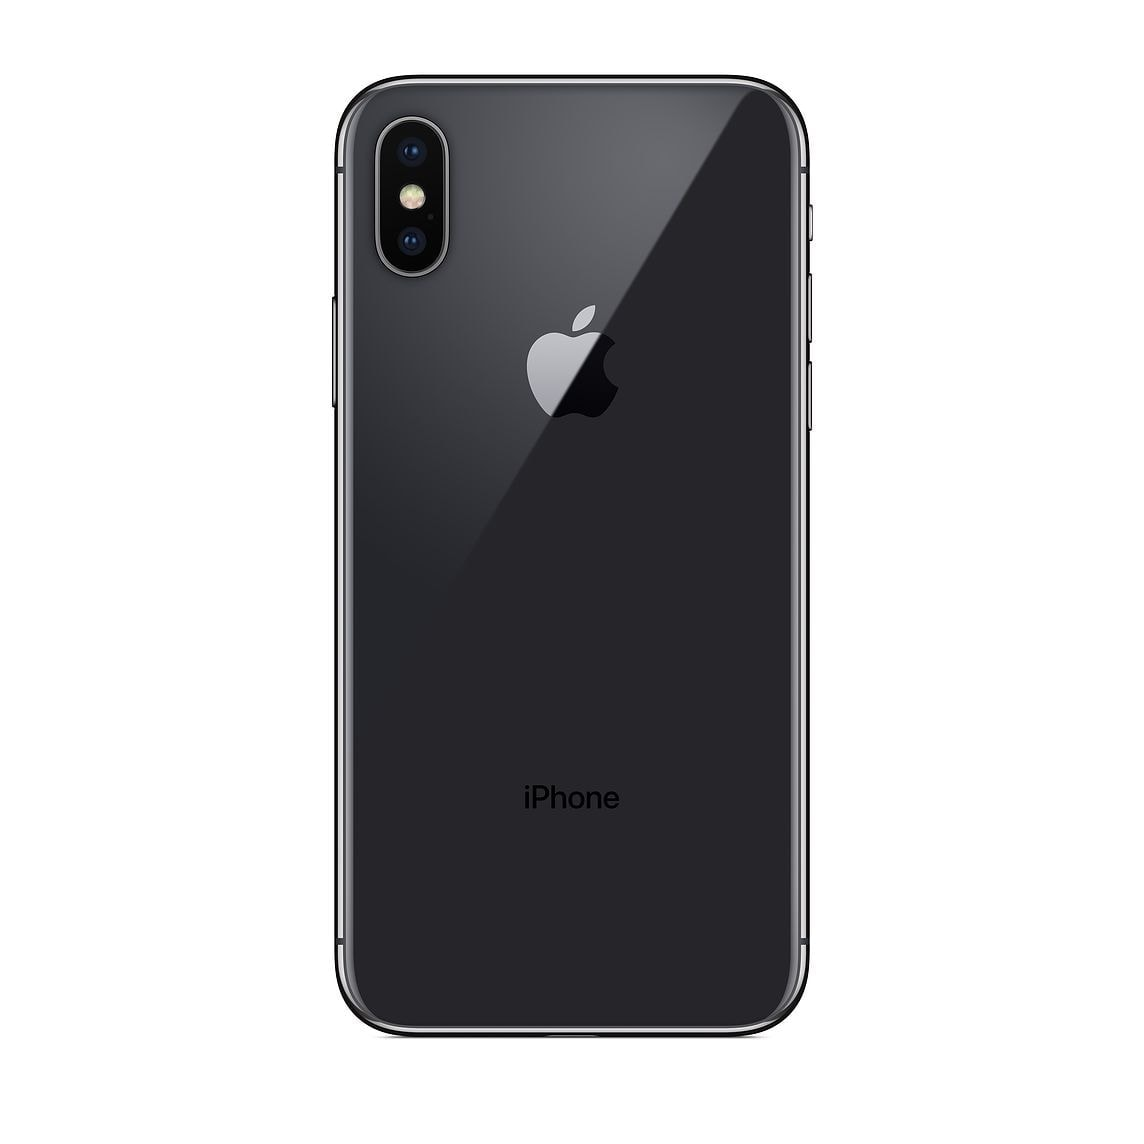 Apple IPhone X Dark Space Grey 256GB Unlocked Sim-Free Retina Mobile Phone Refurbished 12 Months Warranty